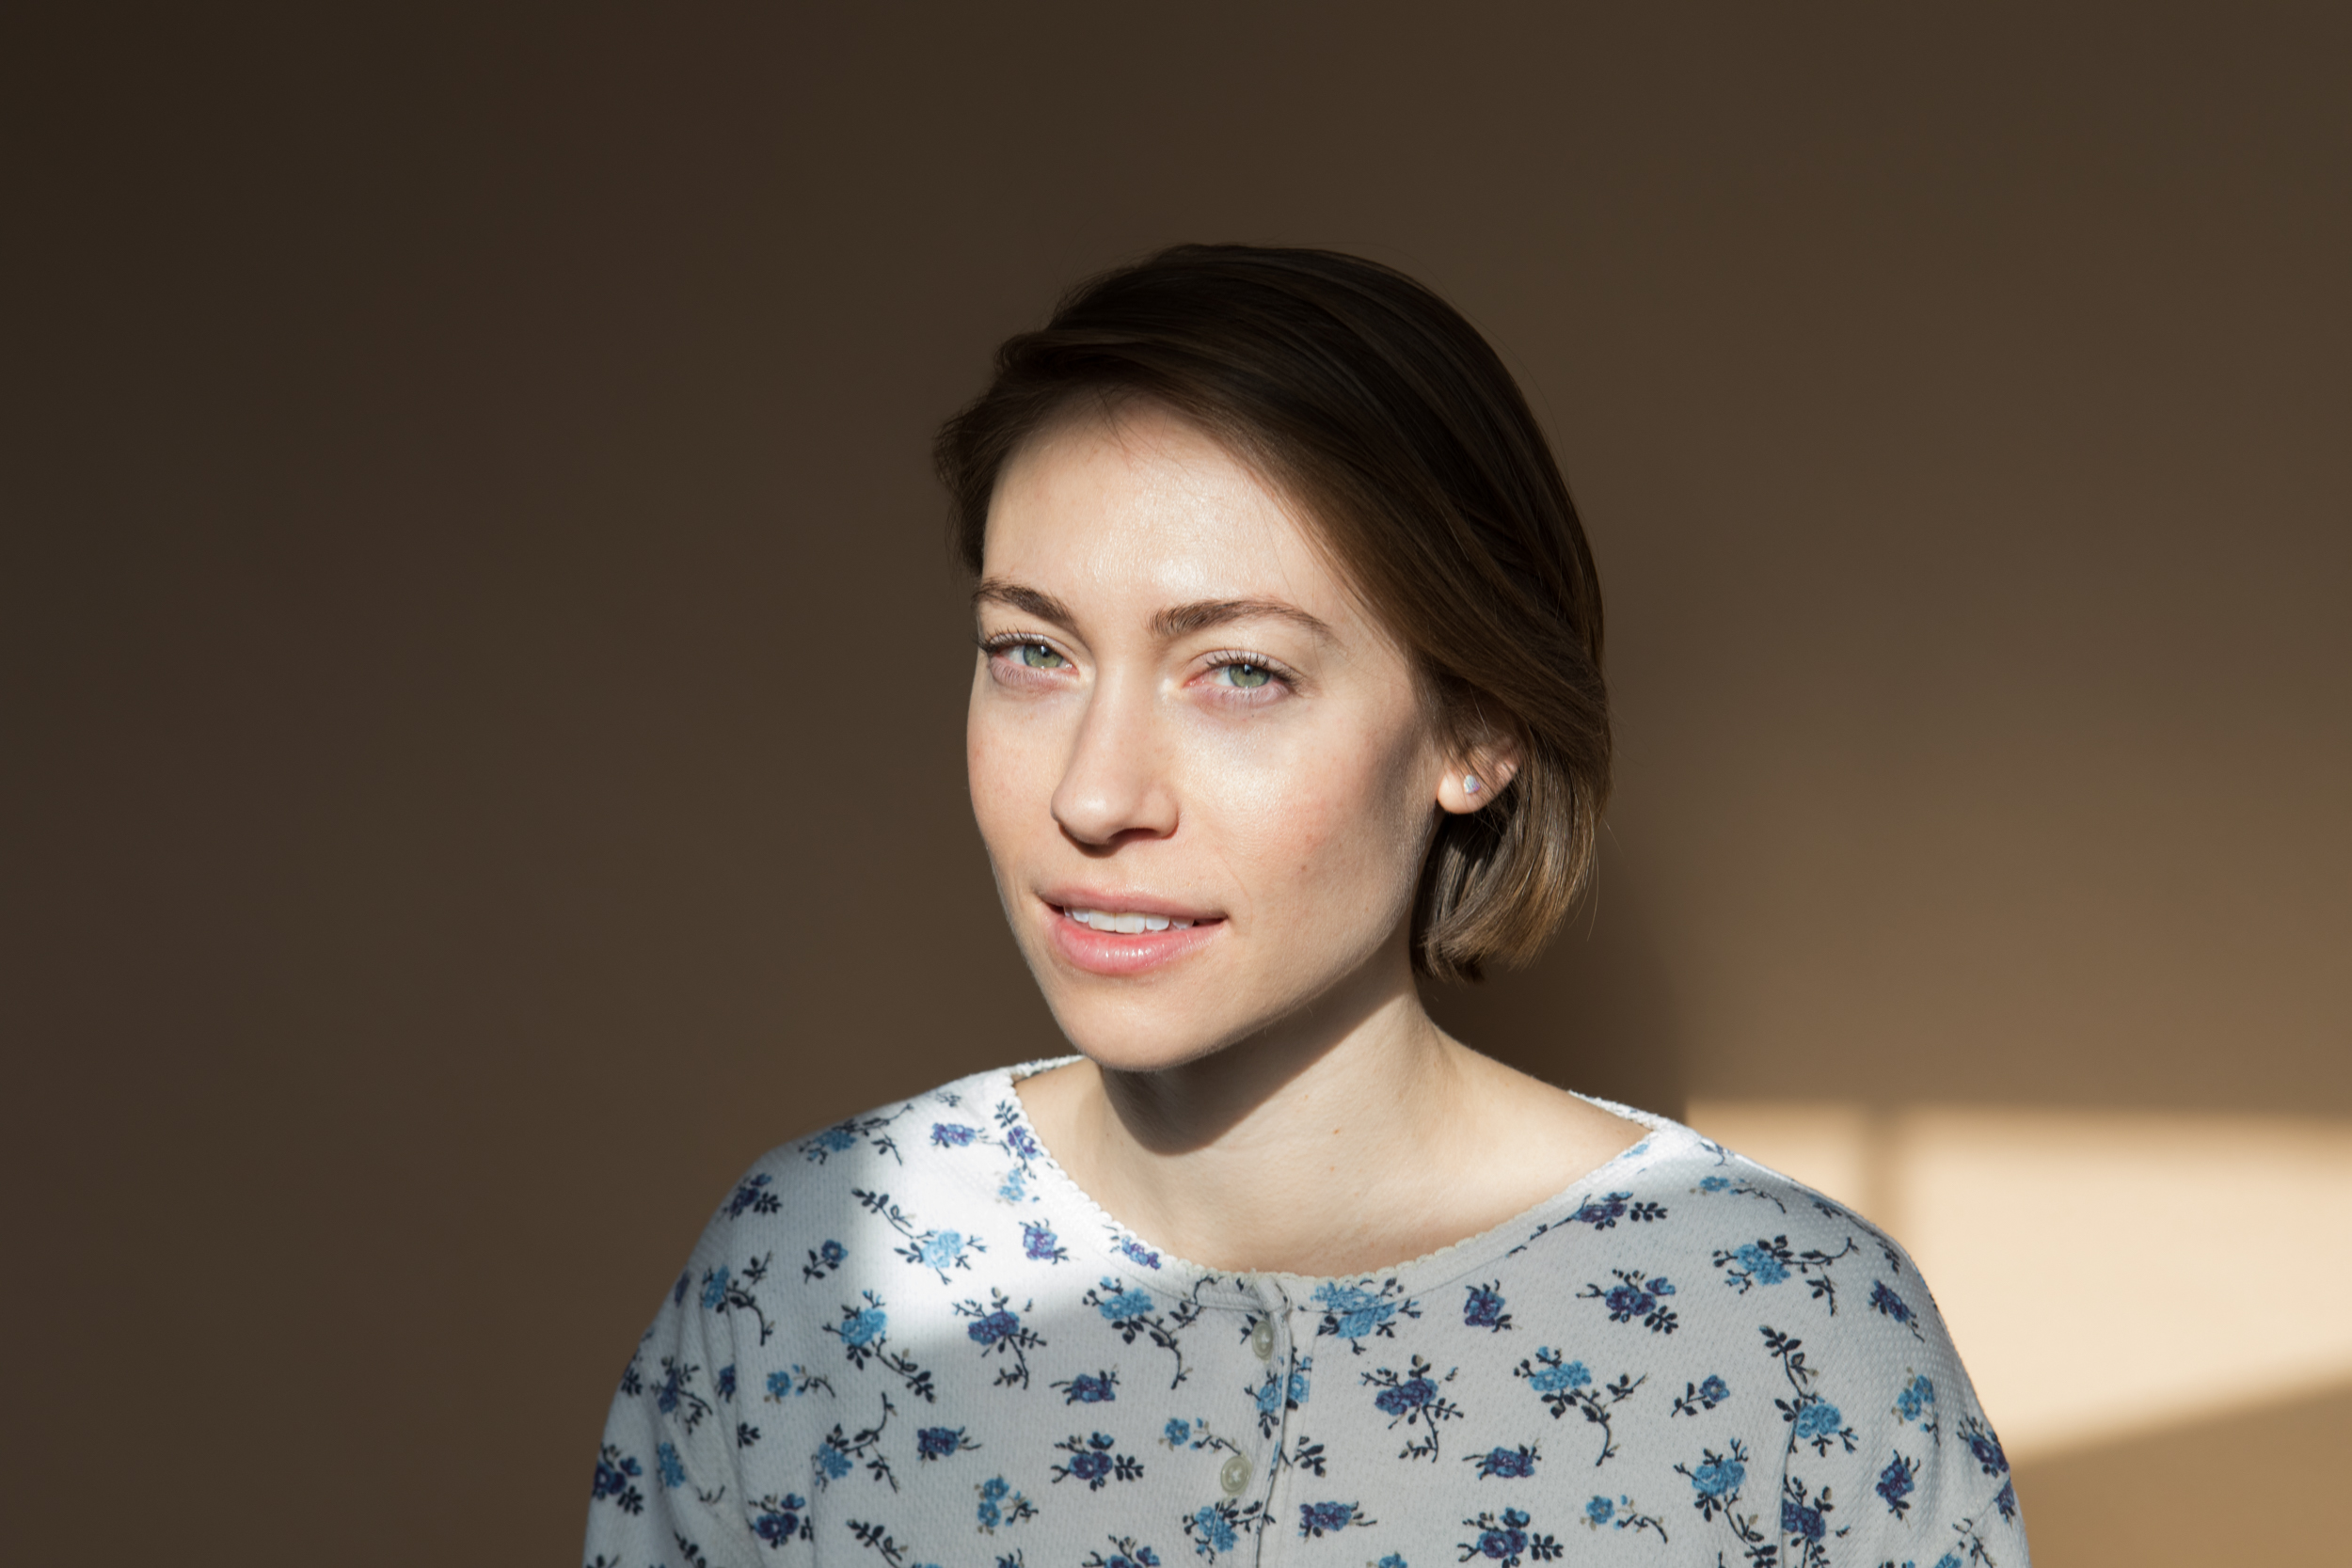 Northern Transmissions' interview with Anna Burch